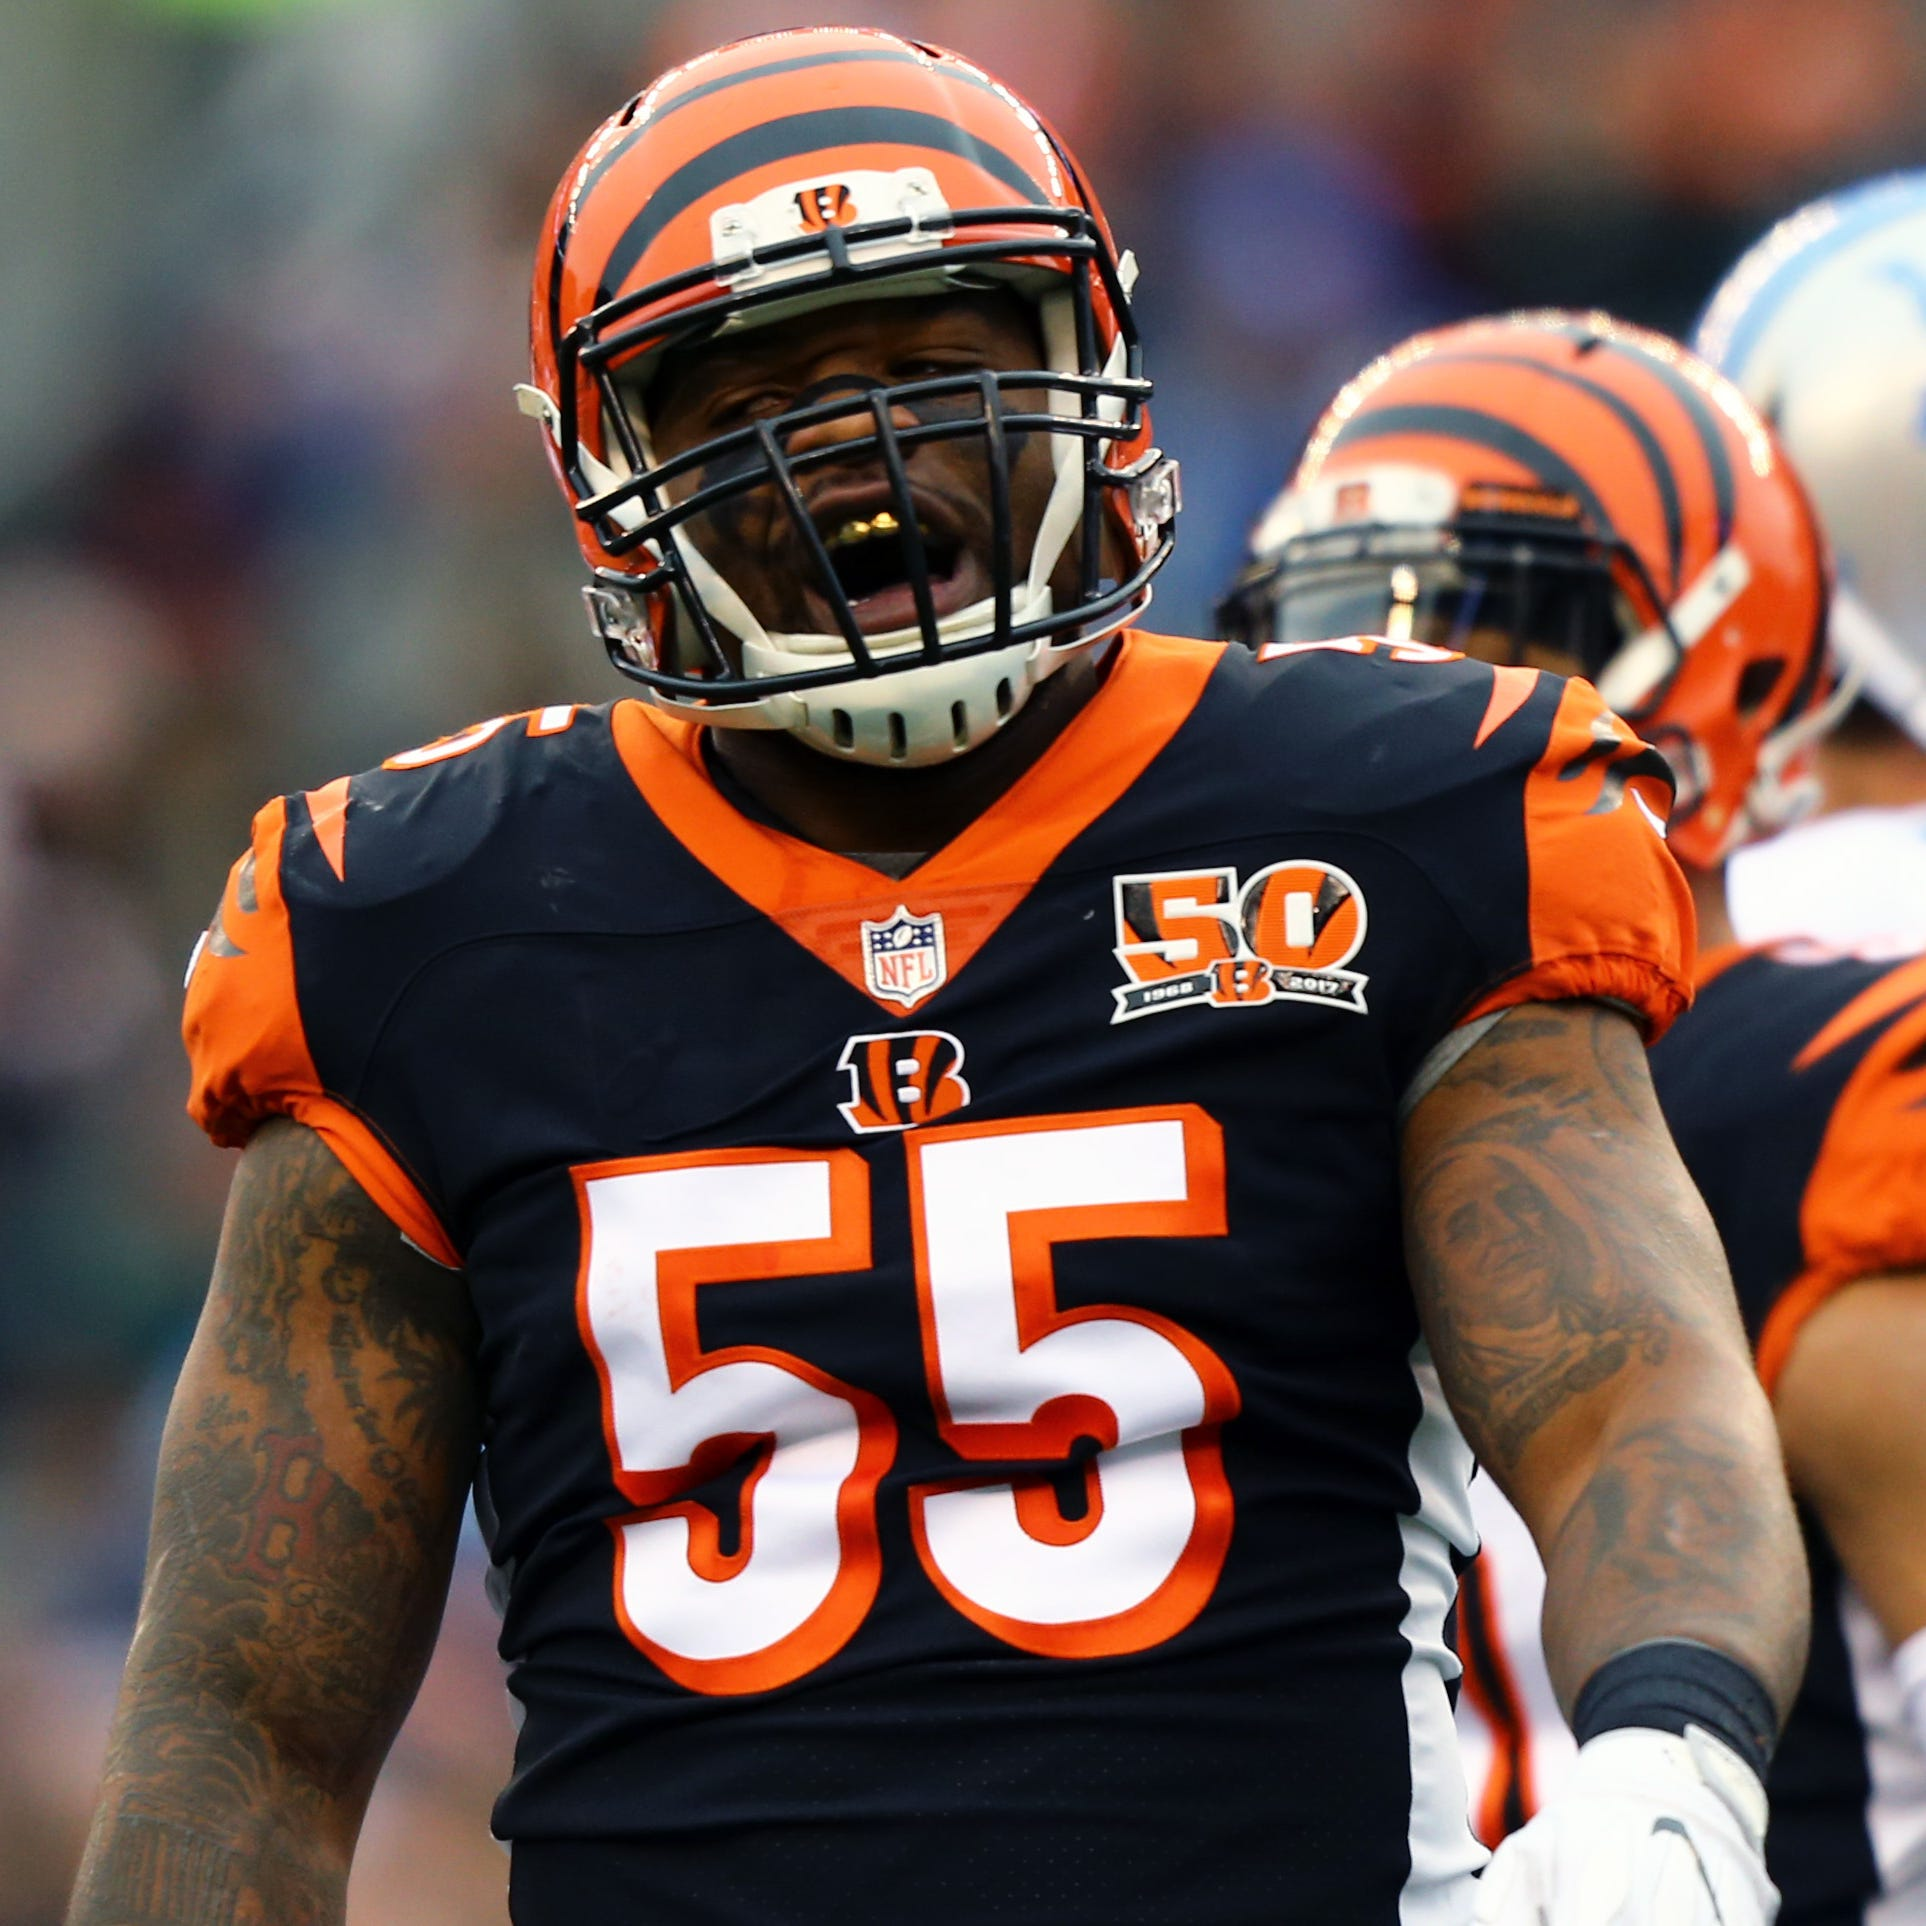 Overlooking Vontaze Burfict's problems hasn't helped the former Arizona State linebacker